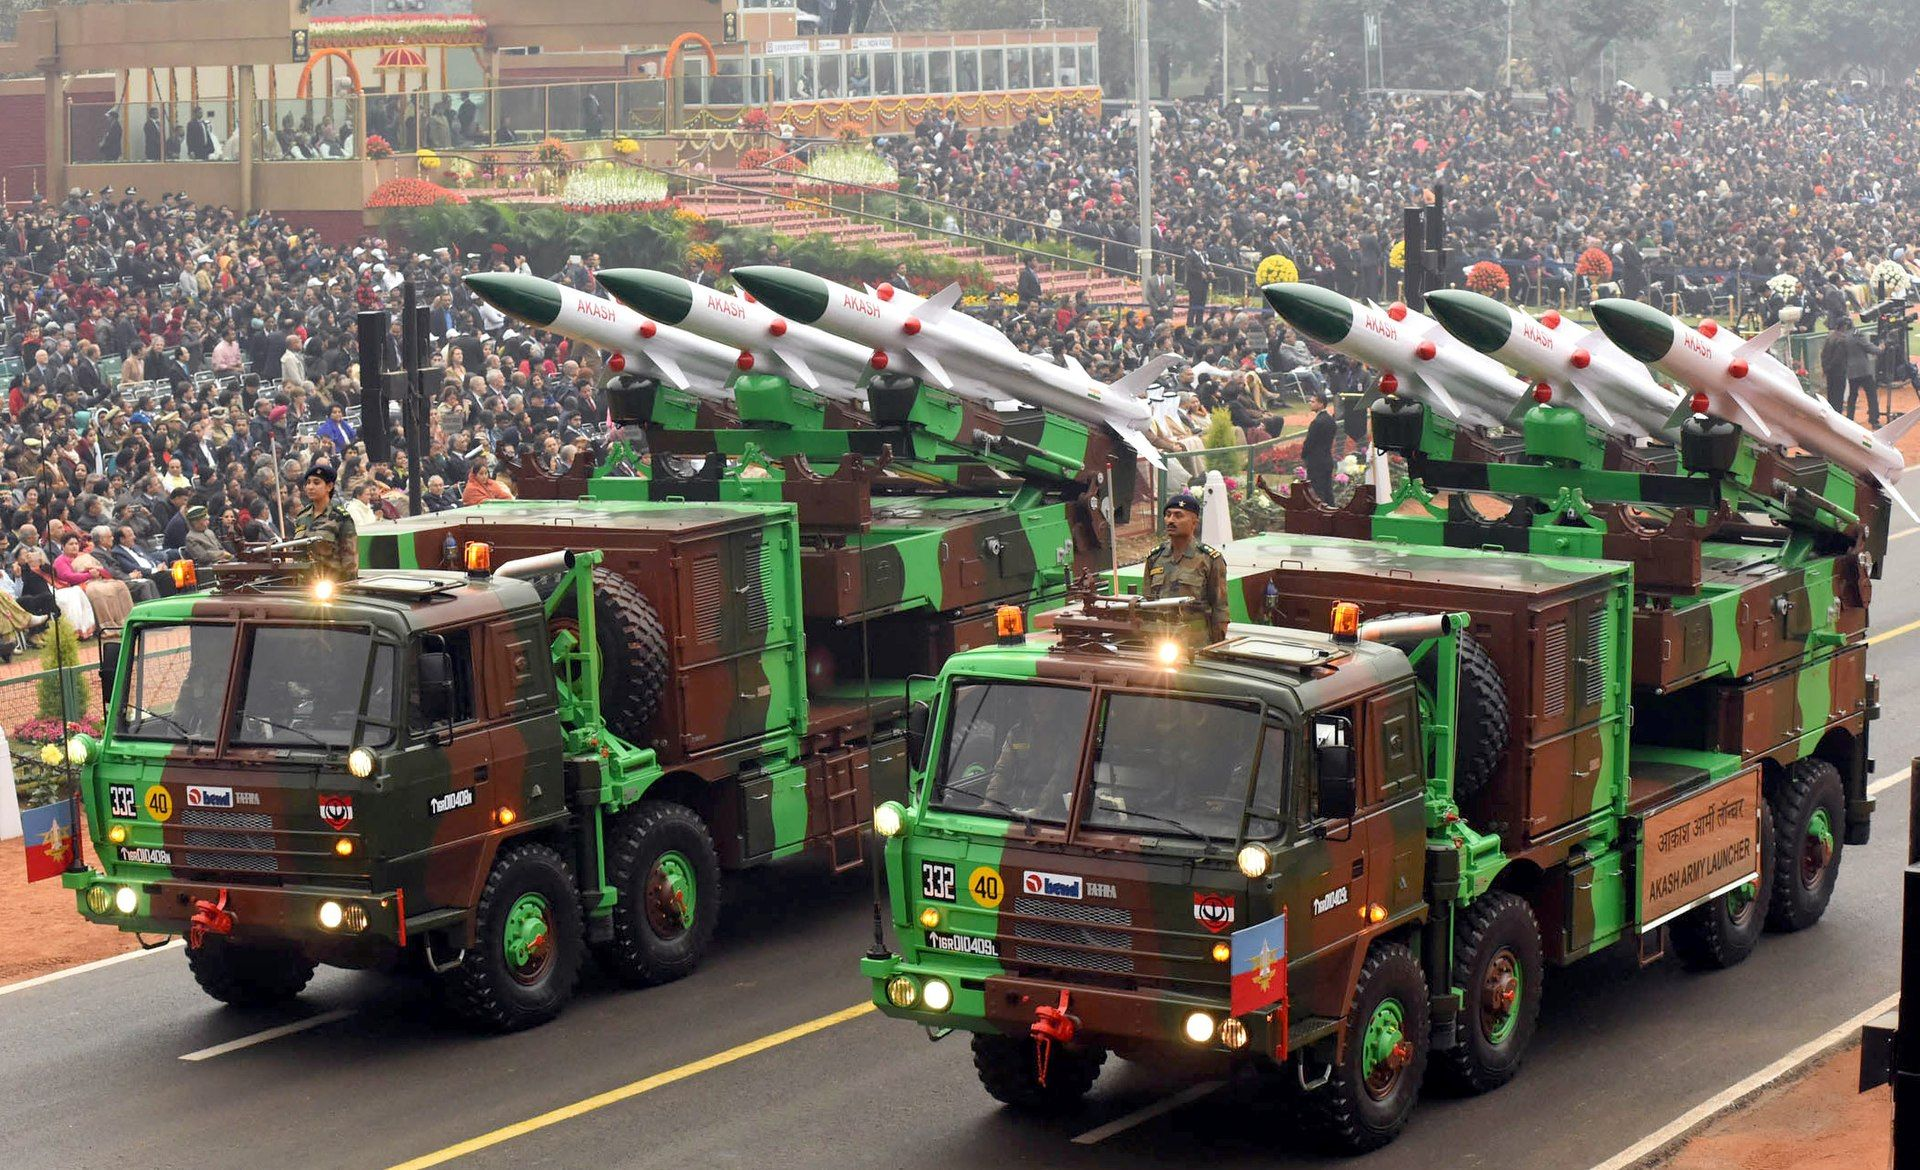 Akash missiles during Republic Day 2017 - Akash (missile) - Wikipedia |  Defence, Top air, Republic day